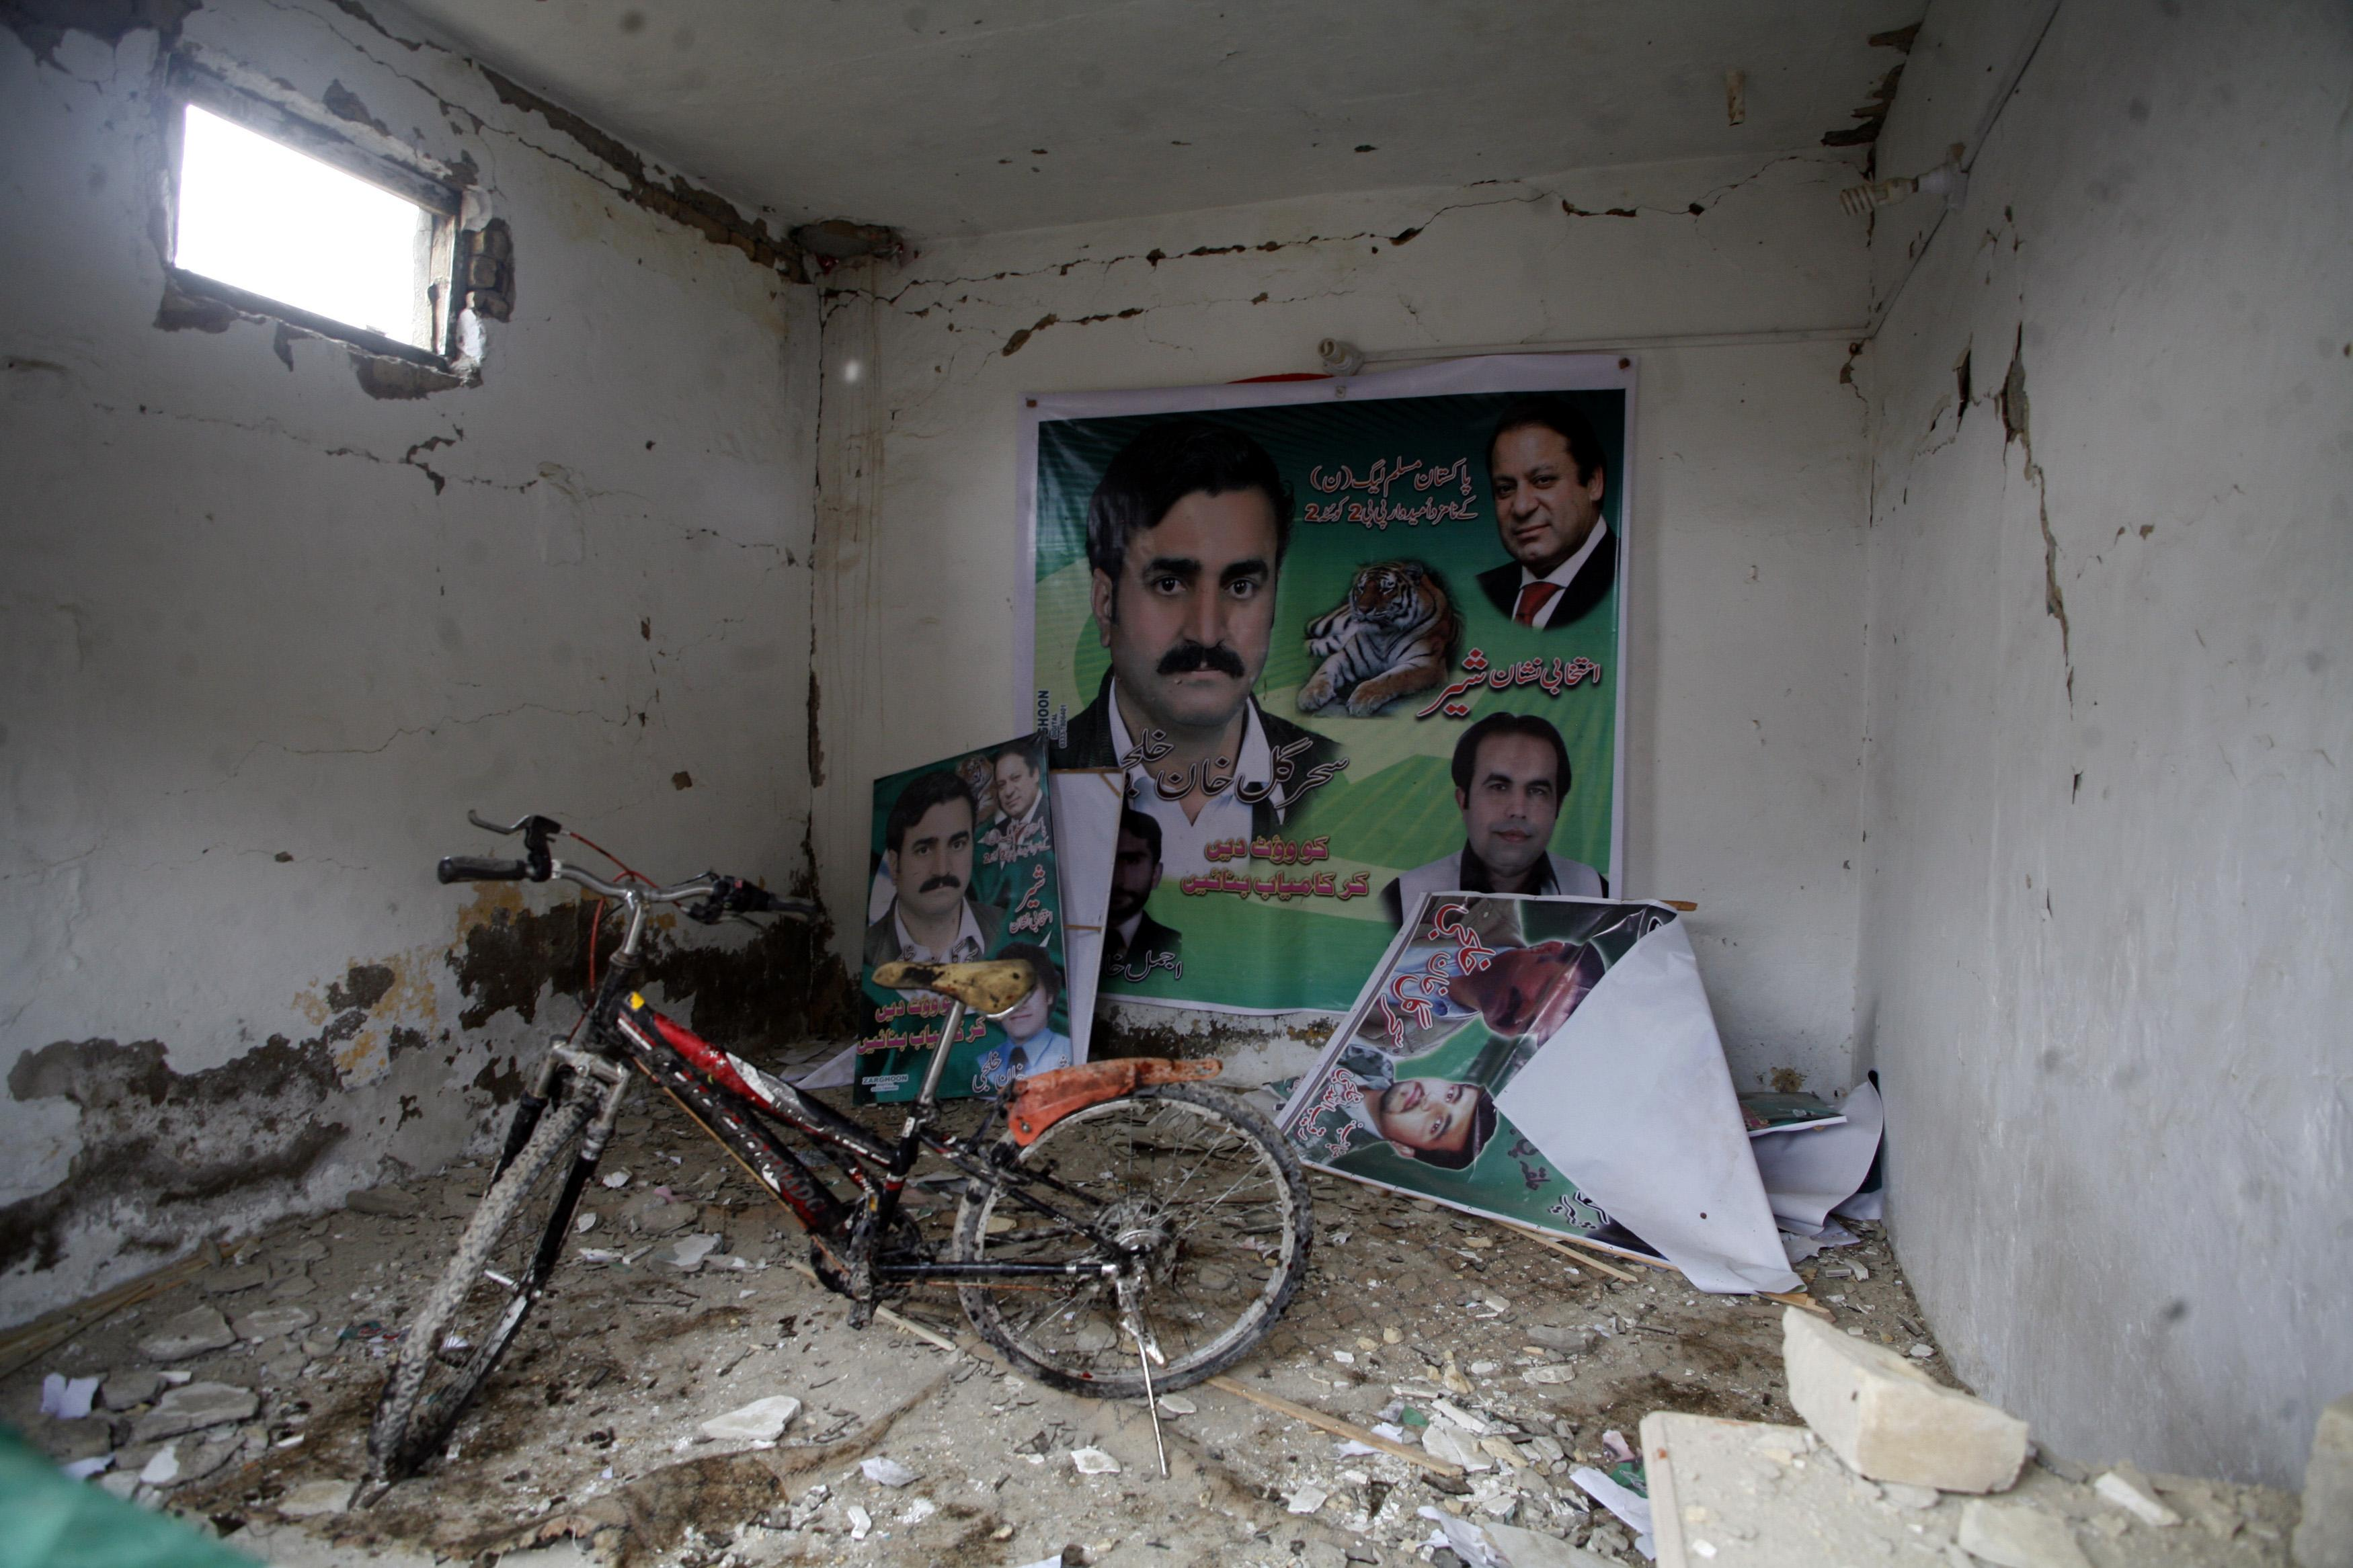 Debris is pictured in a damaged office of Pakistan Muslim League (N) after Tuesday's bomb blast in Quetta April 24, 2013. A prominent leader of Pakistan's ethnic Hazara minority narrowly escaped the suicide attack that killed six people on Tuesday, underscoring the growing threat militants pose to secular politicians in the run-up to next month's general elections. The blast in Quetta was the worst attack since a series of bombings in the city at the start of the year killed almost 200 people, briefly drawing globa